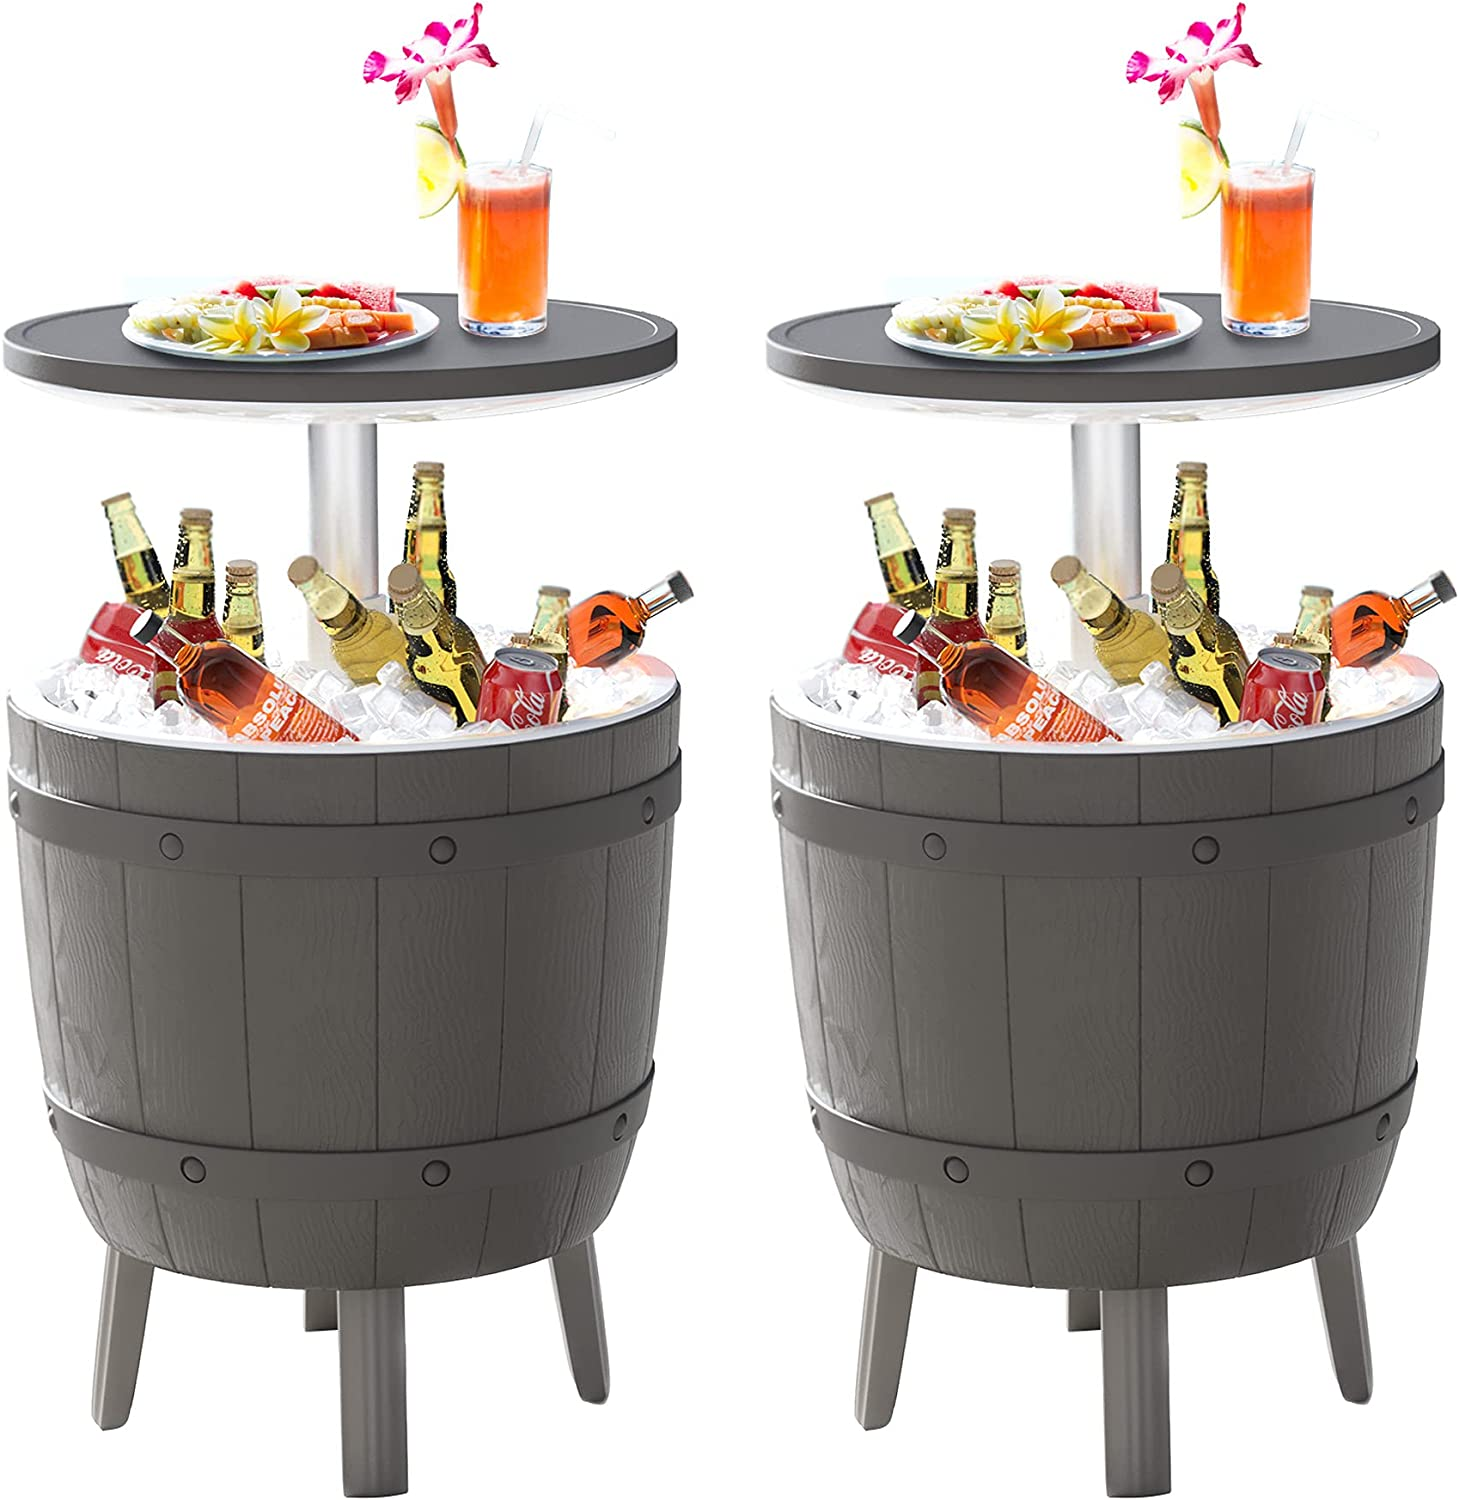 Cozy Castle 2 Sets of Outdoor Bar Table, 3 in 1 Cool Bar, Adjustable Patio Cool Bar, Resin Outdoor Side Table, Outdoor Patio Furniture, Coffee, Beer and Wine Cooler for All-Weather, Backyard Decor